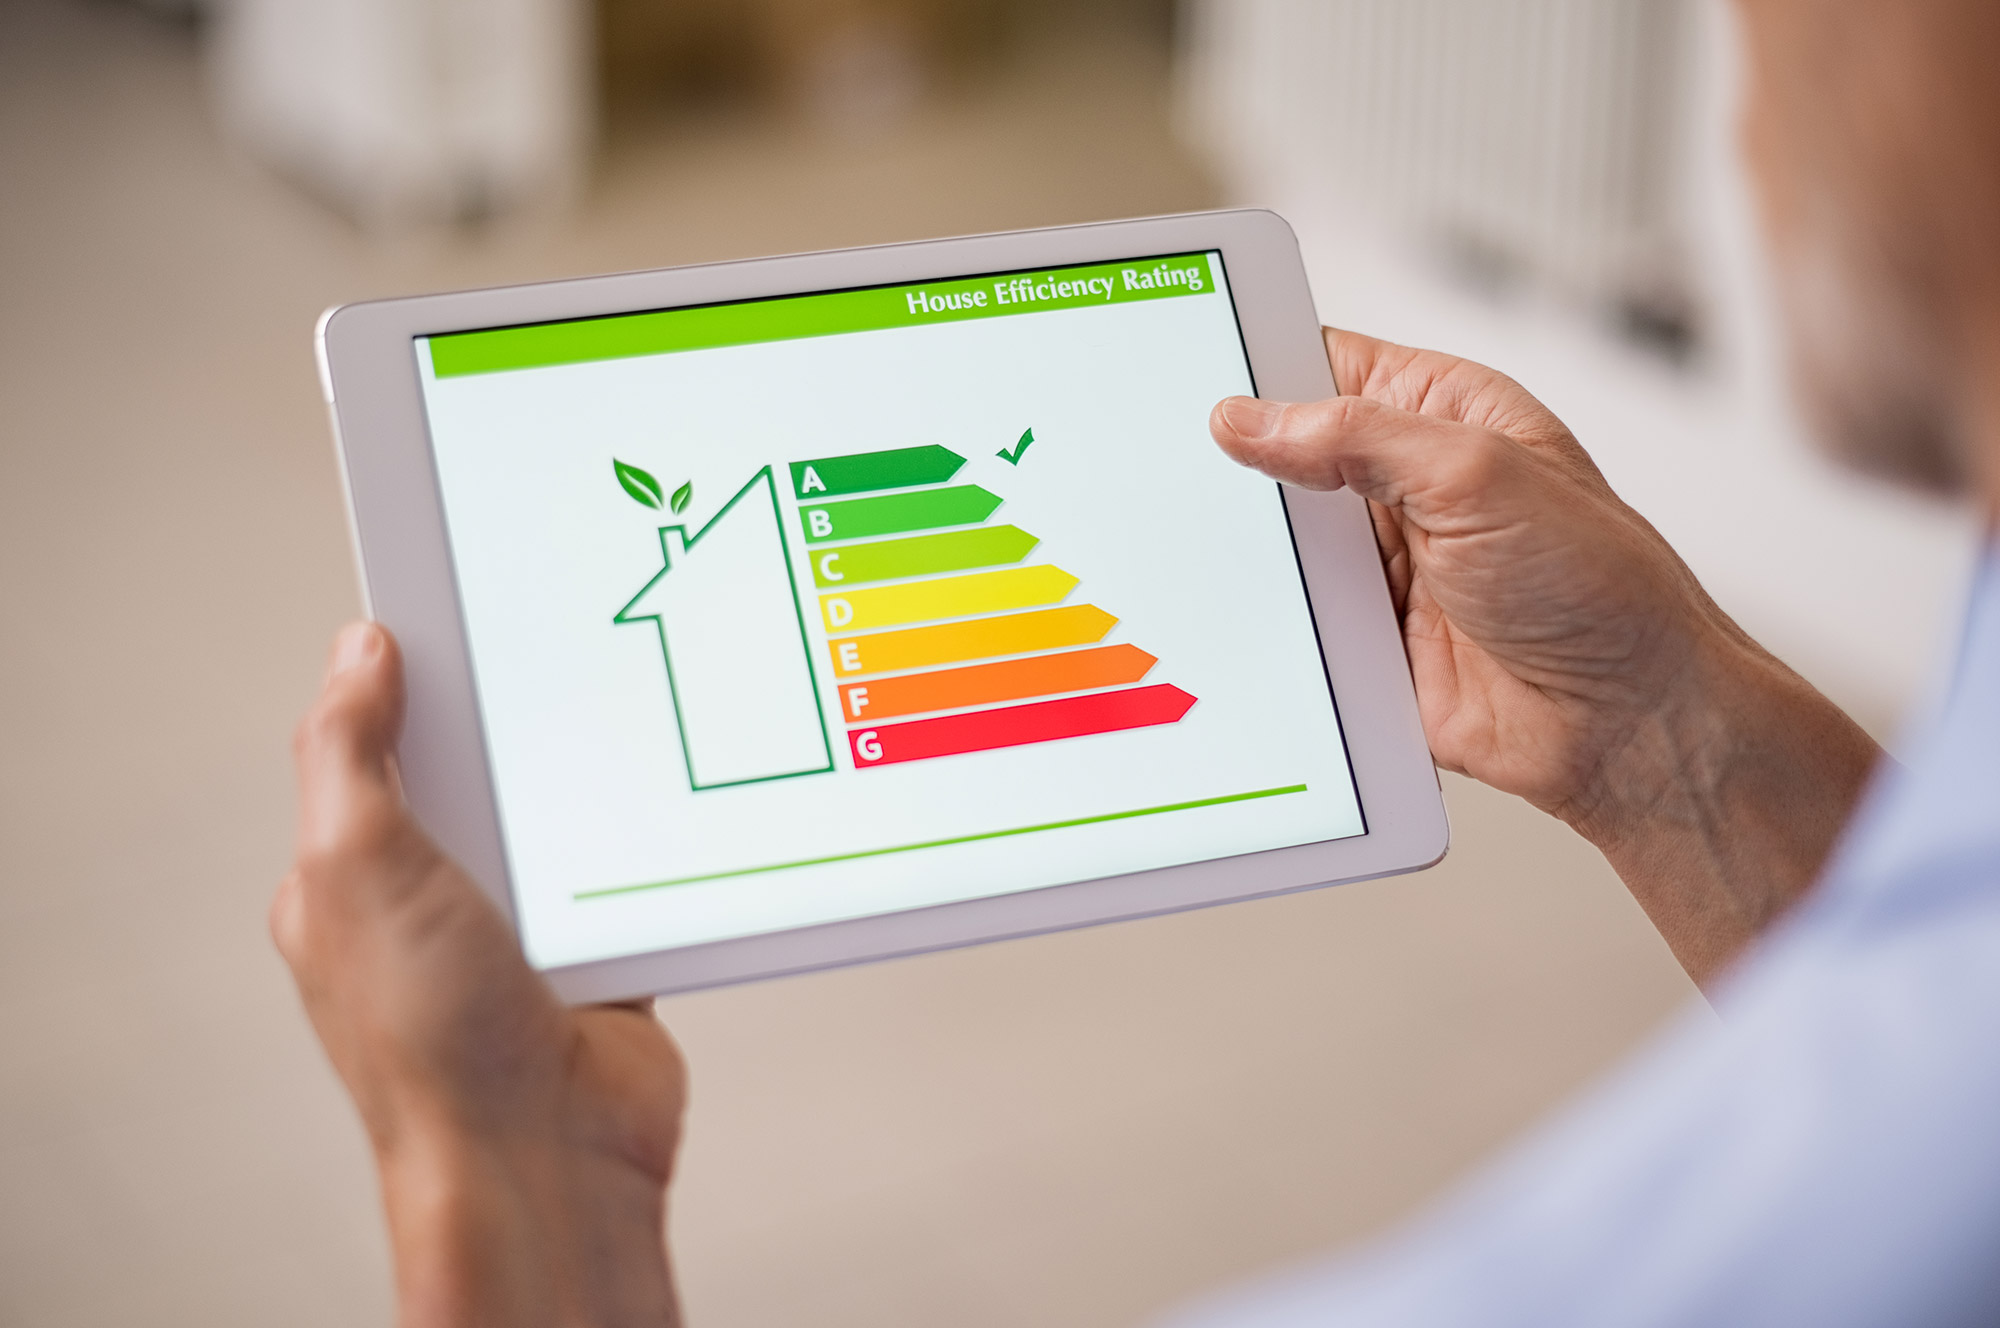 inspector holding tablet showing home energy rating system app